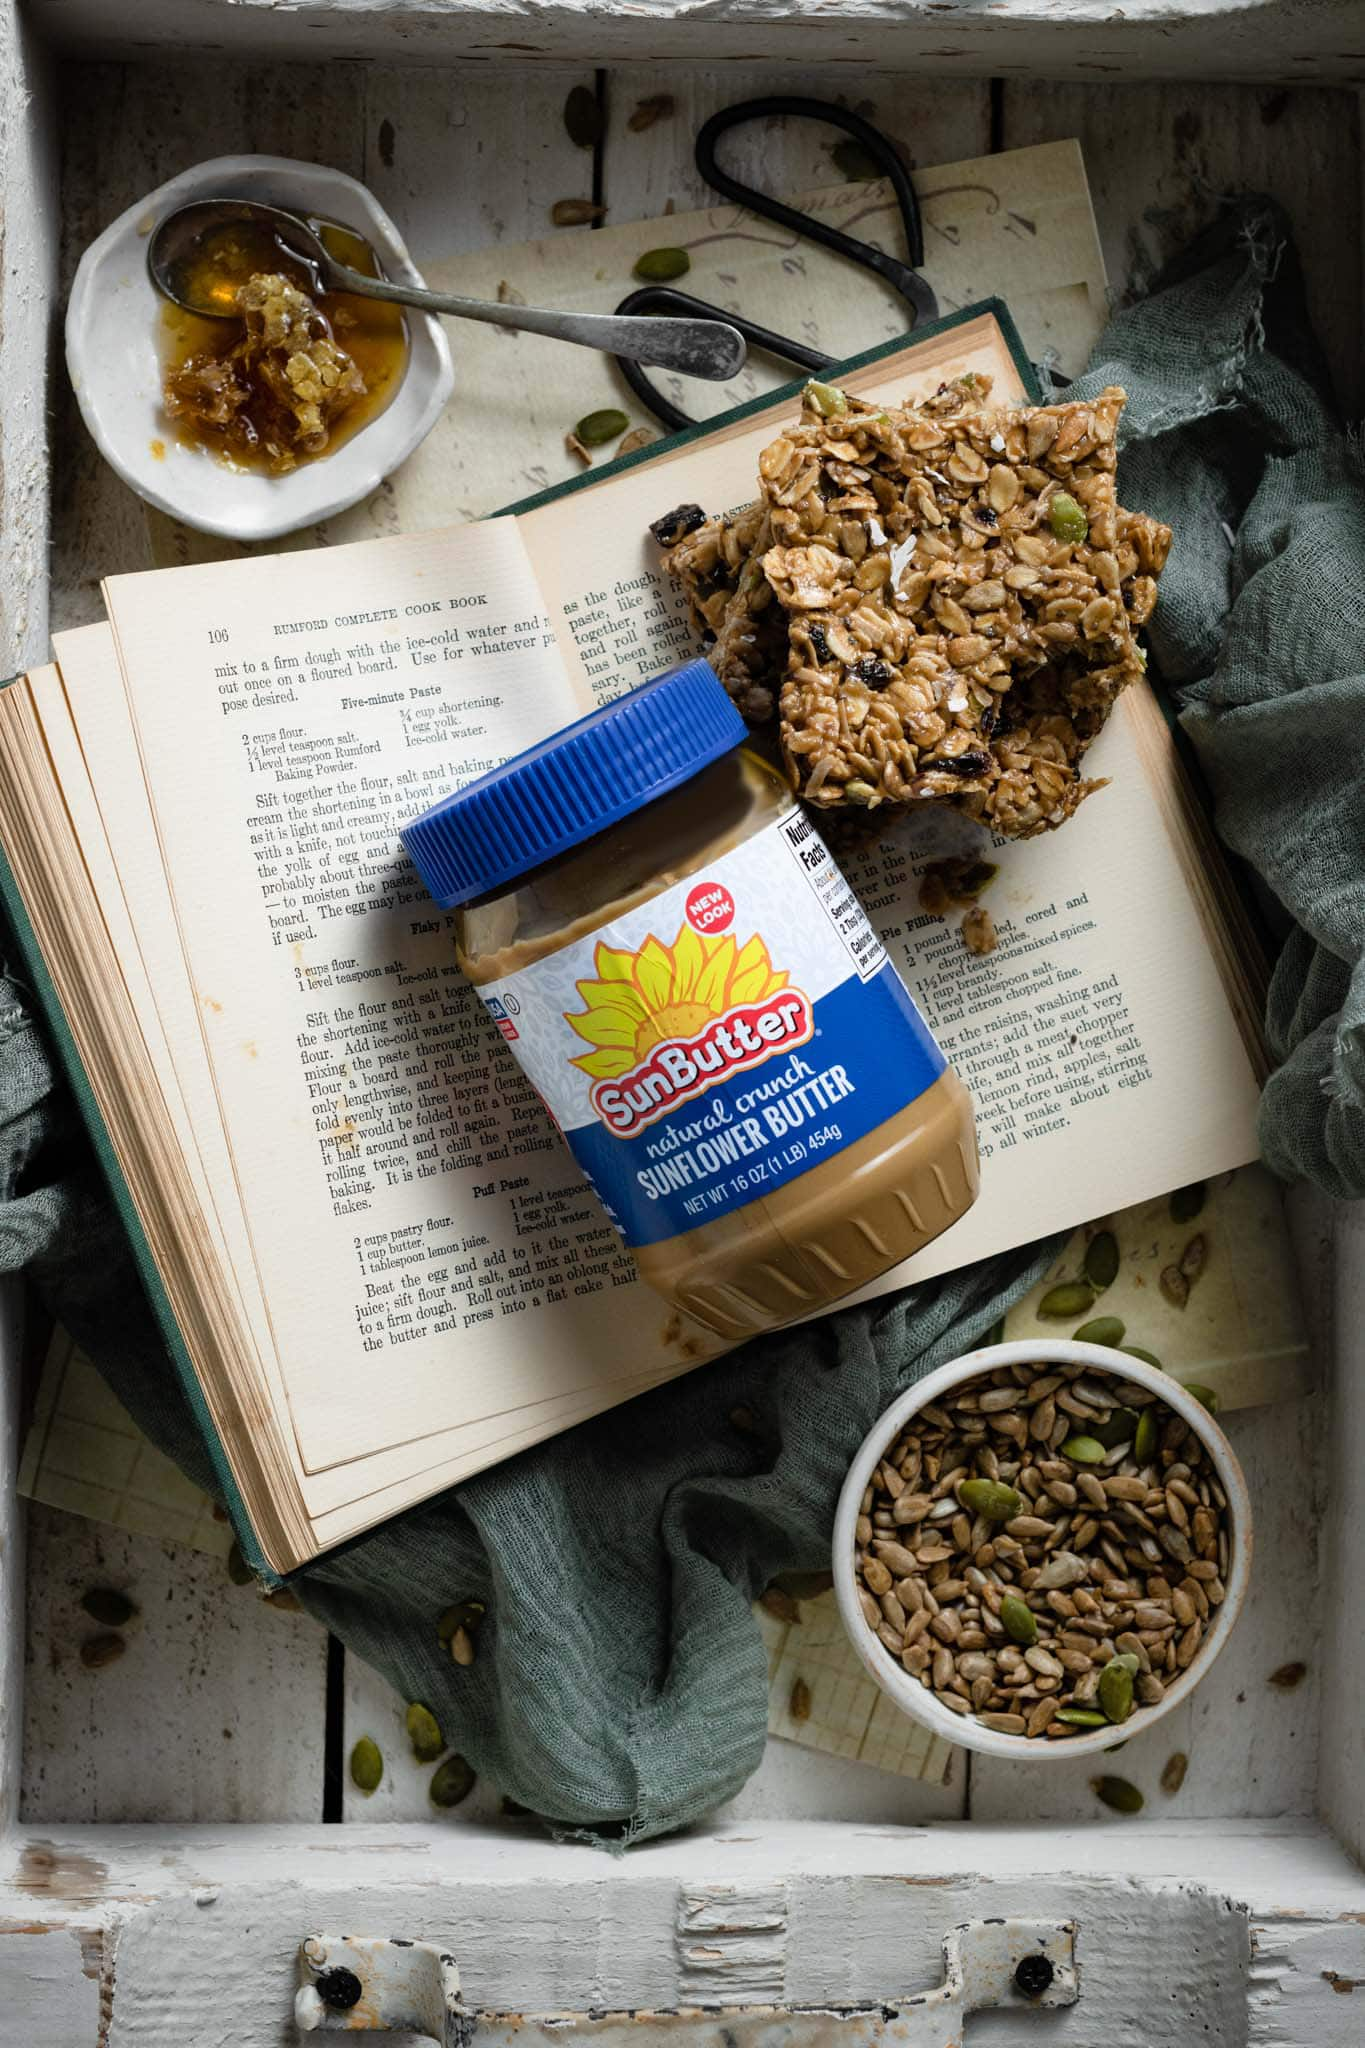 Sunbutter with homemade granola bars.